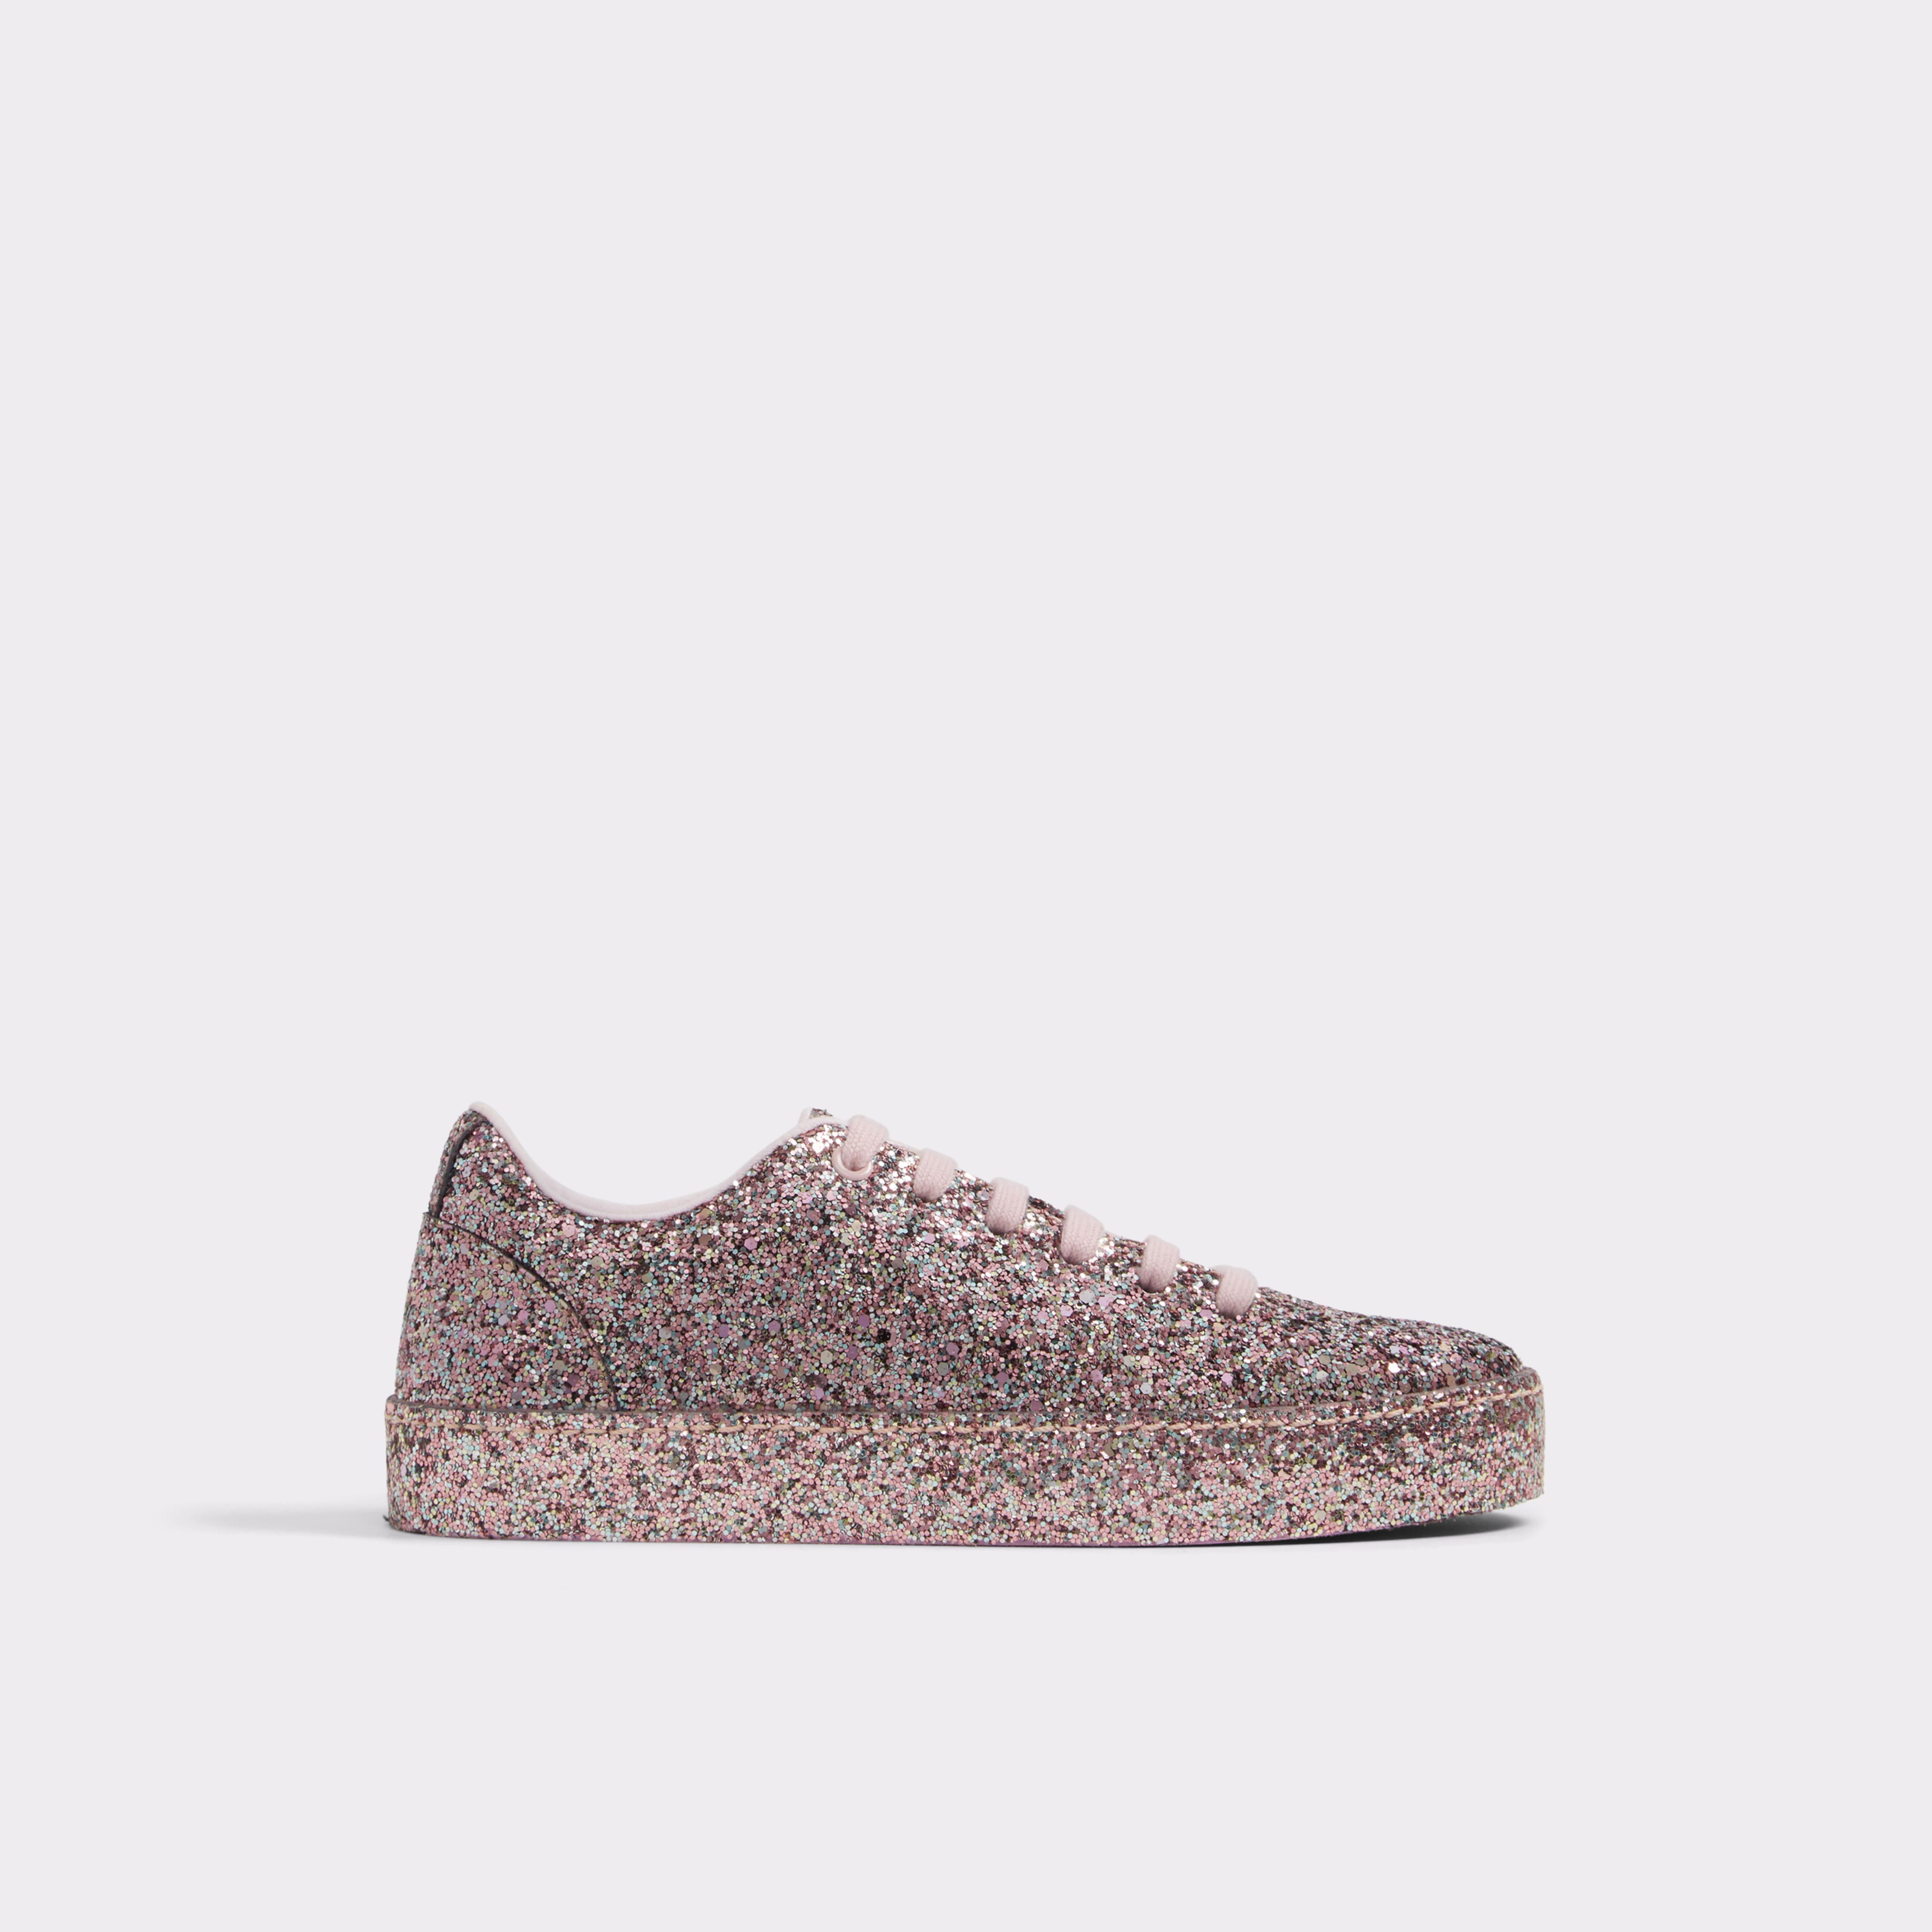 ALDO US #ad #sponsored #sneakers #shoes